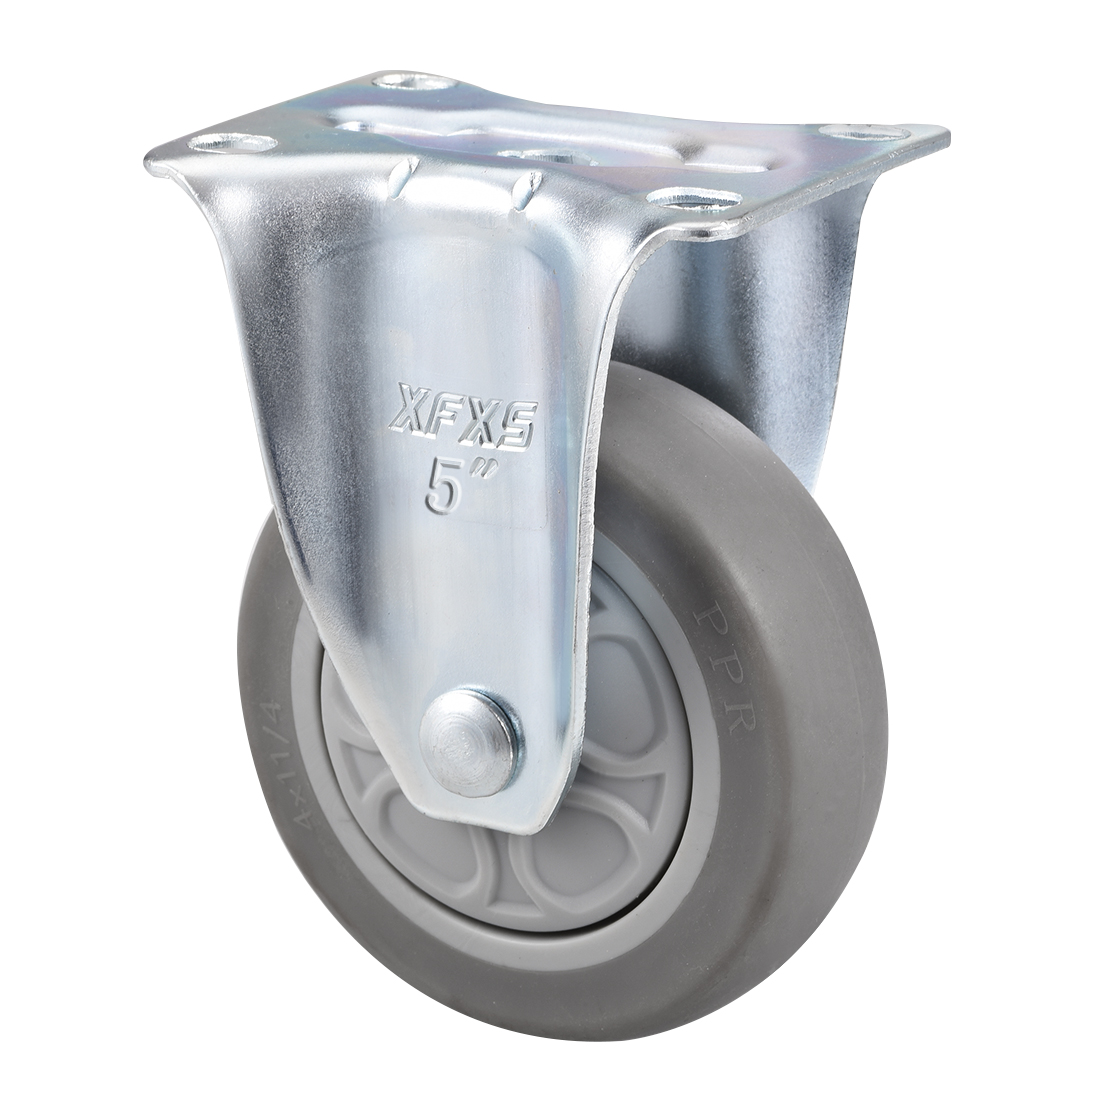 Fixed Caster Wheels 5inch TPR Caster Top Plate Mounted 308lb Capacity